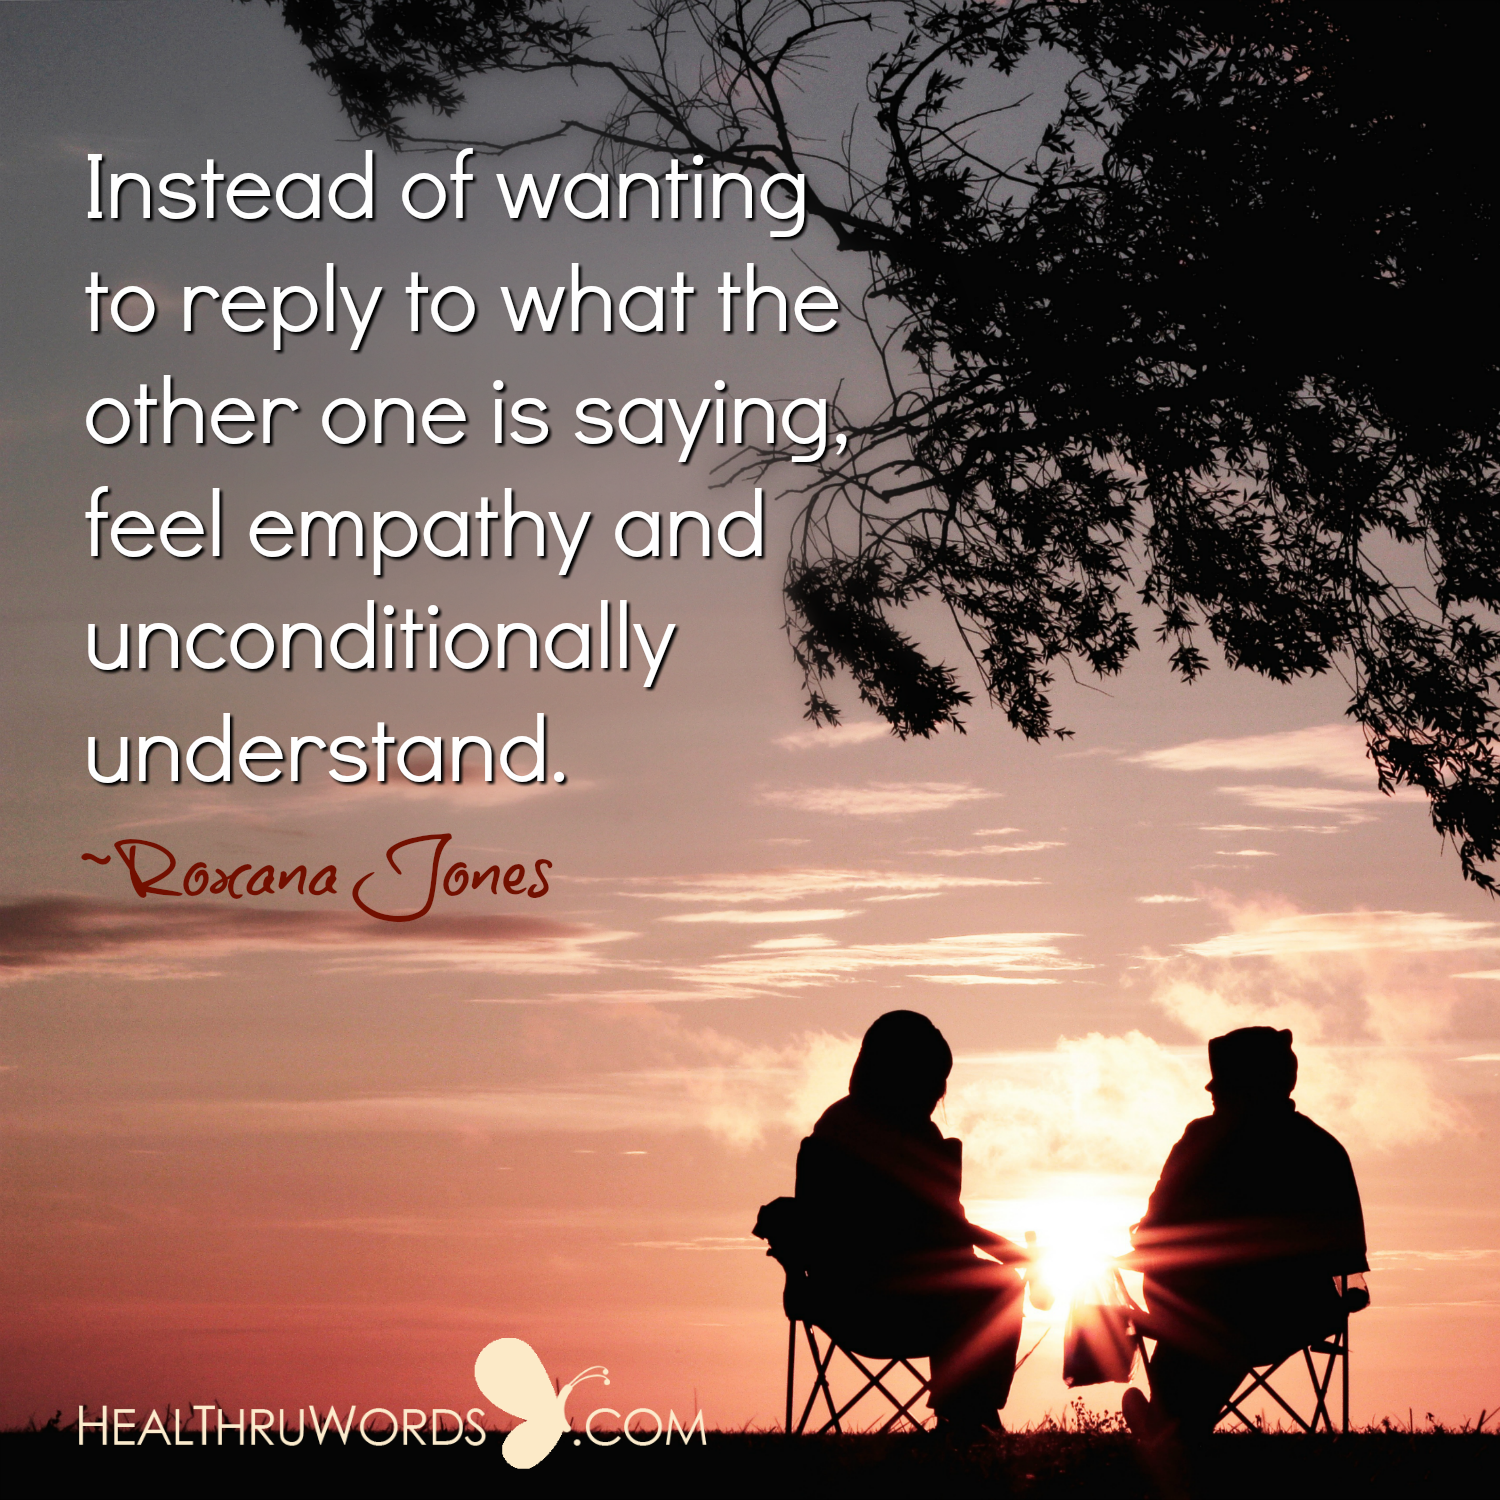 Inspirational Image: Empathic Communication